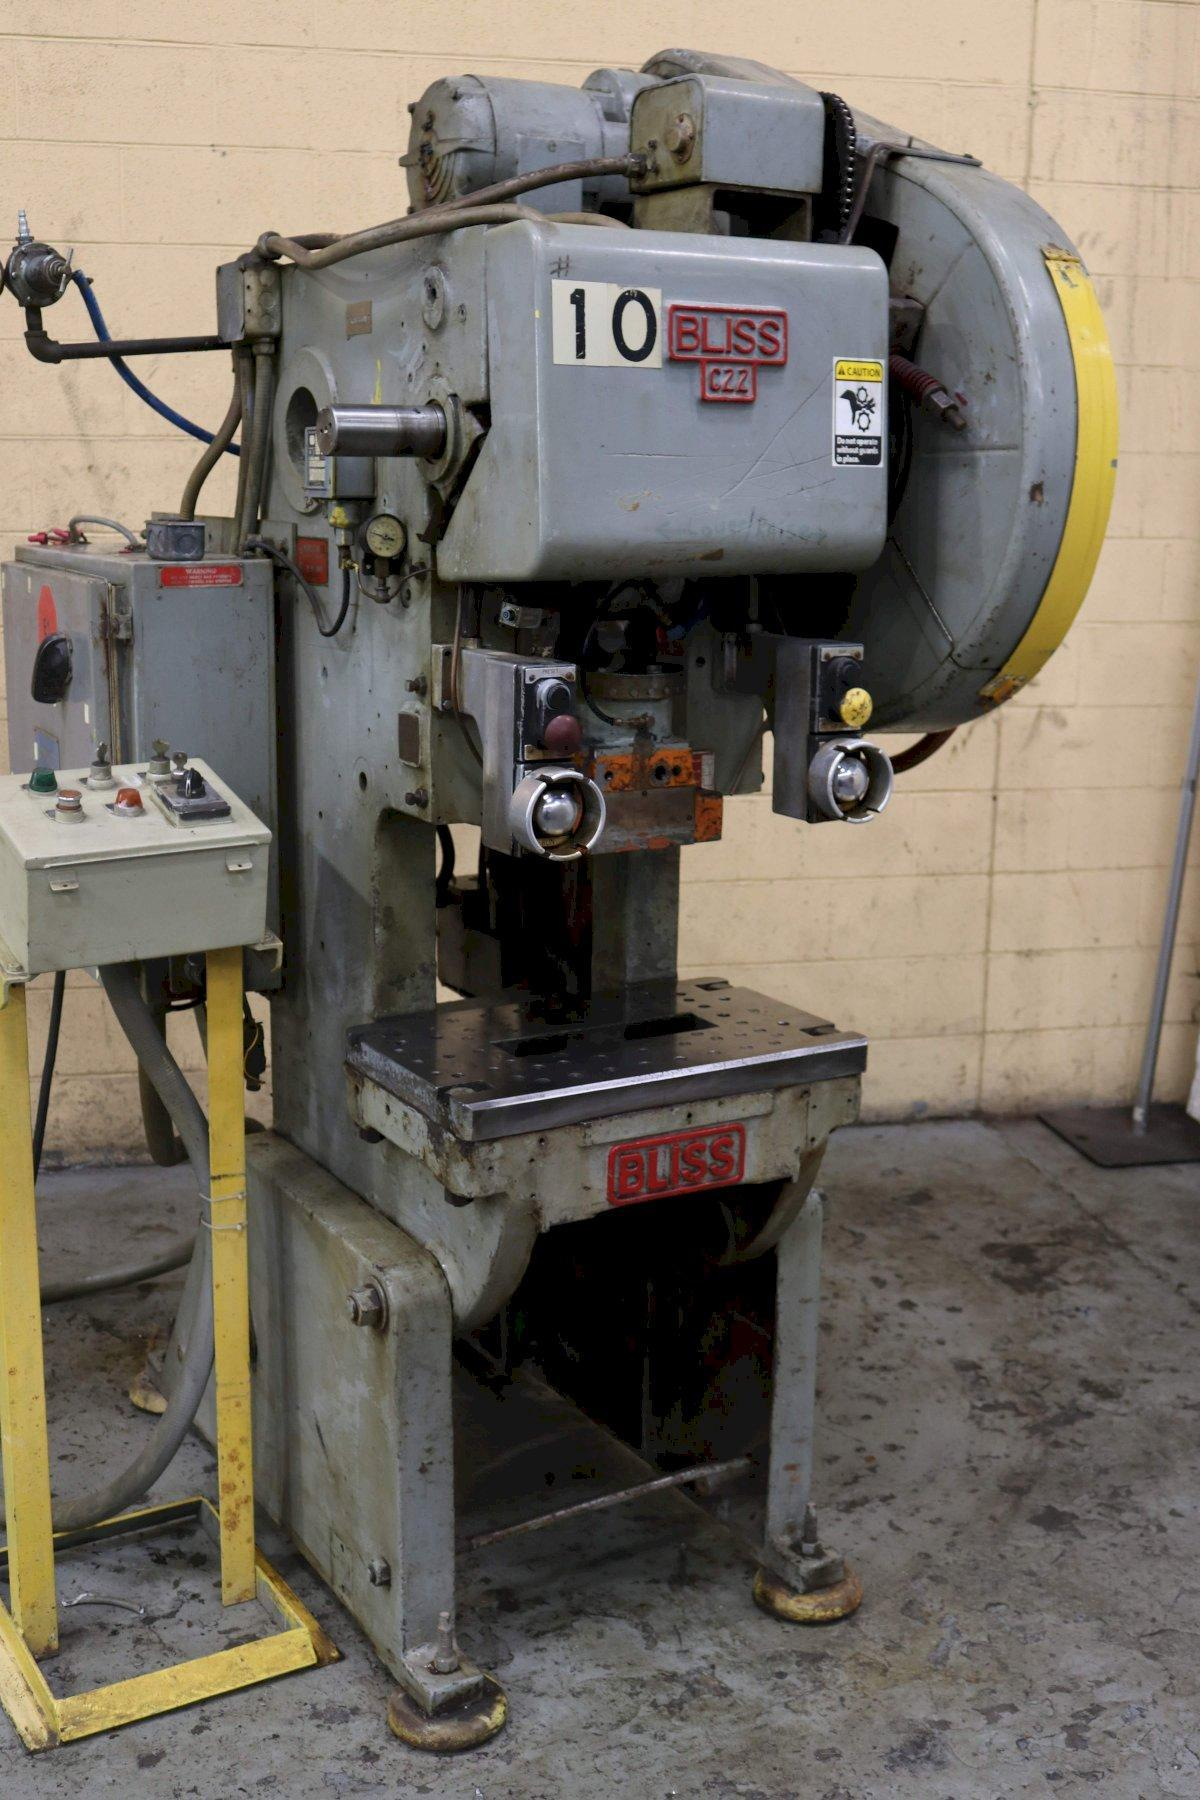 22 Ton Bliss OBI Press